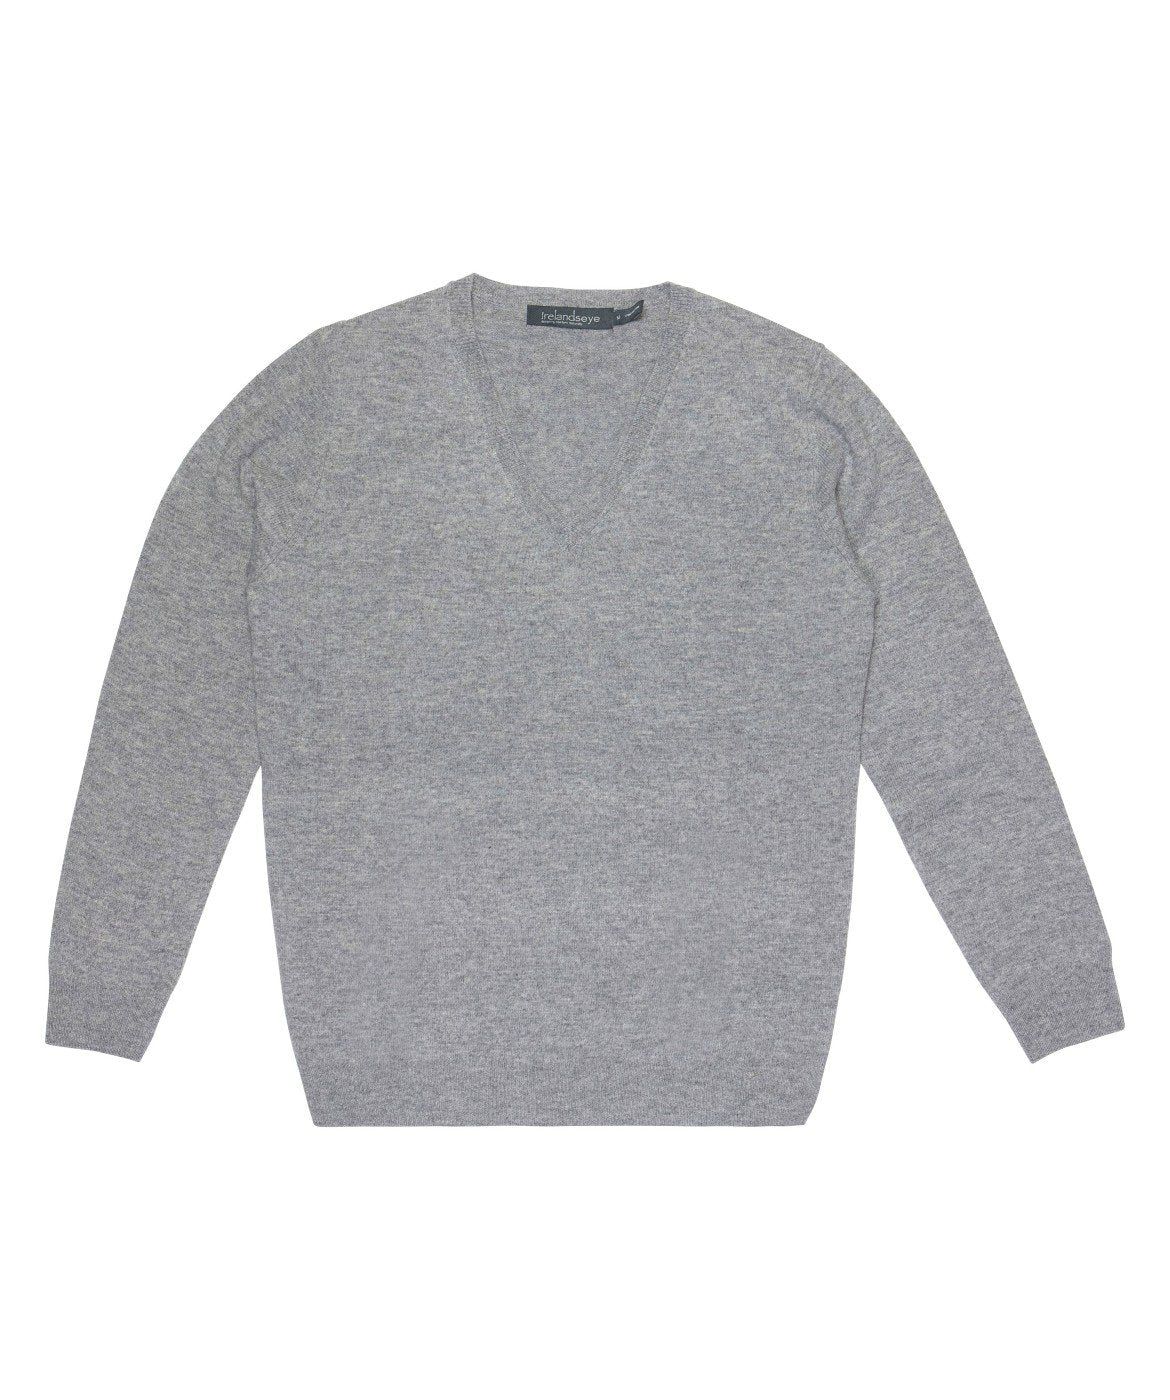 Women's Luxe Touch Wool V Neck Sweater Grey-Smoke